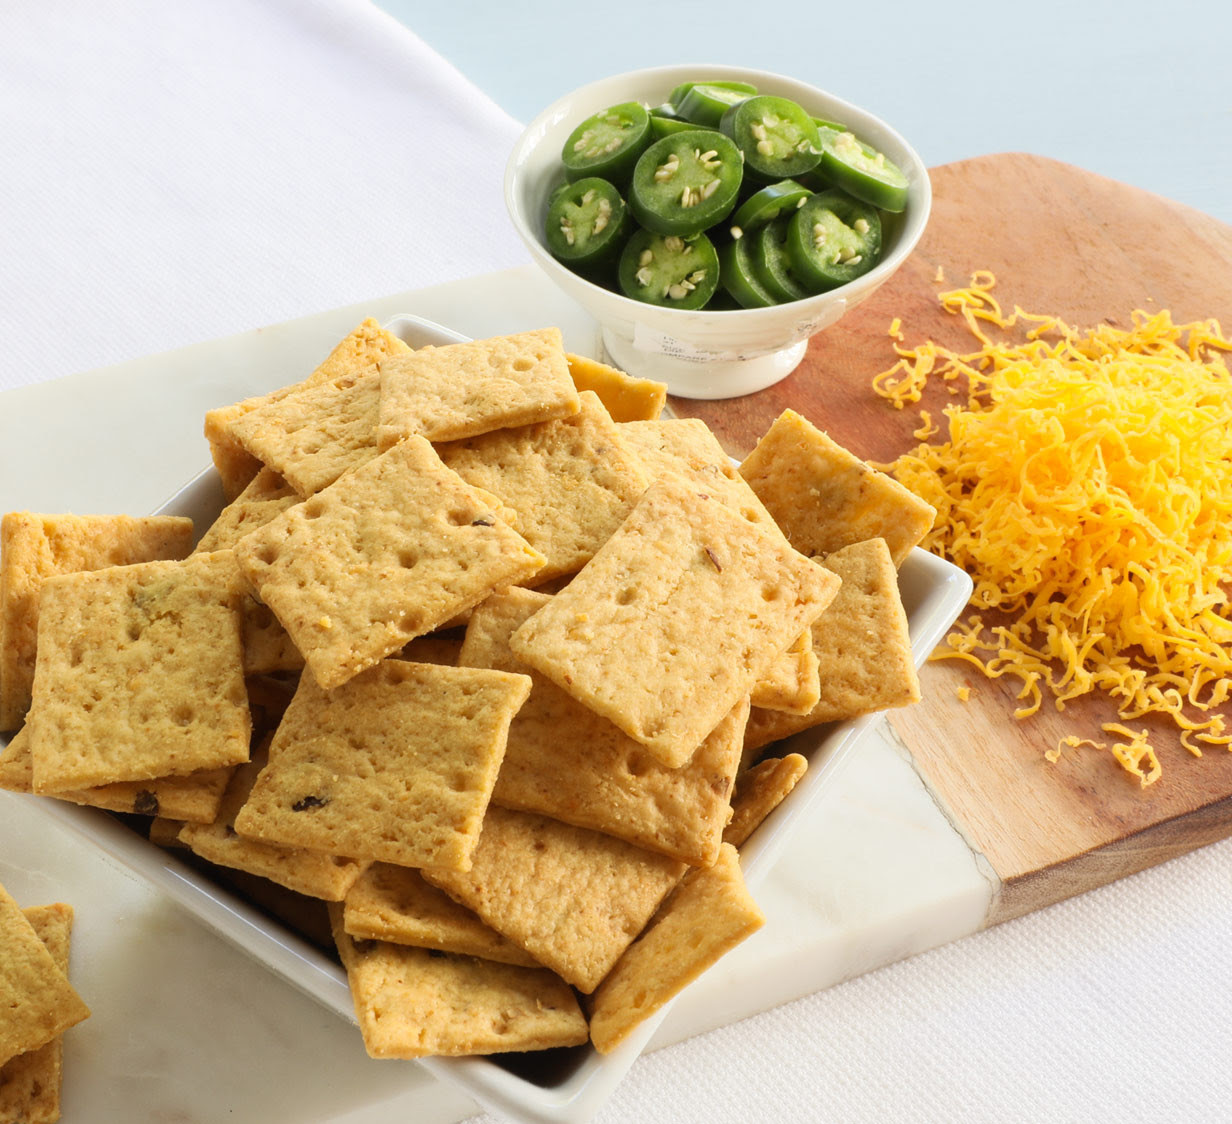 Cheddar & Hatch Chile Crackers